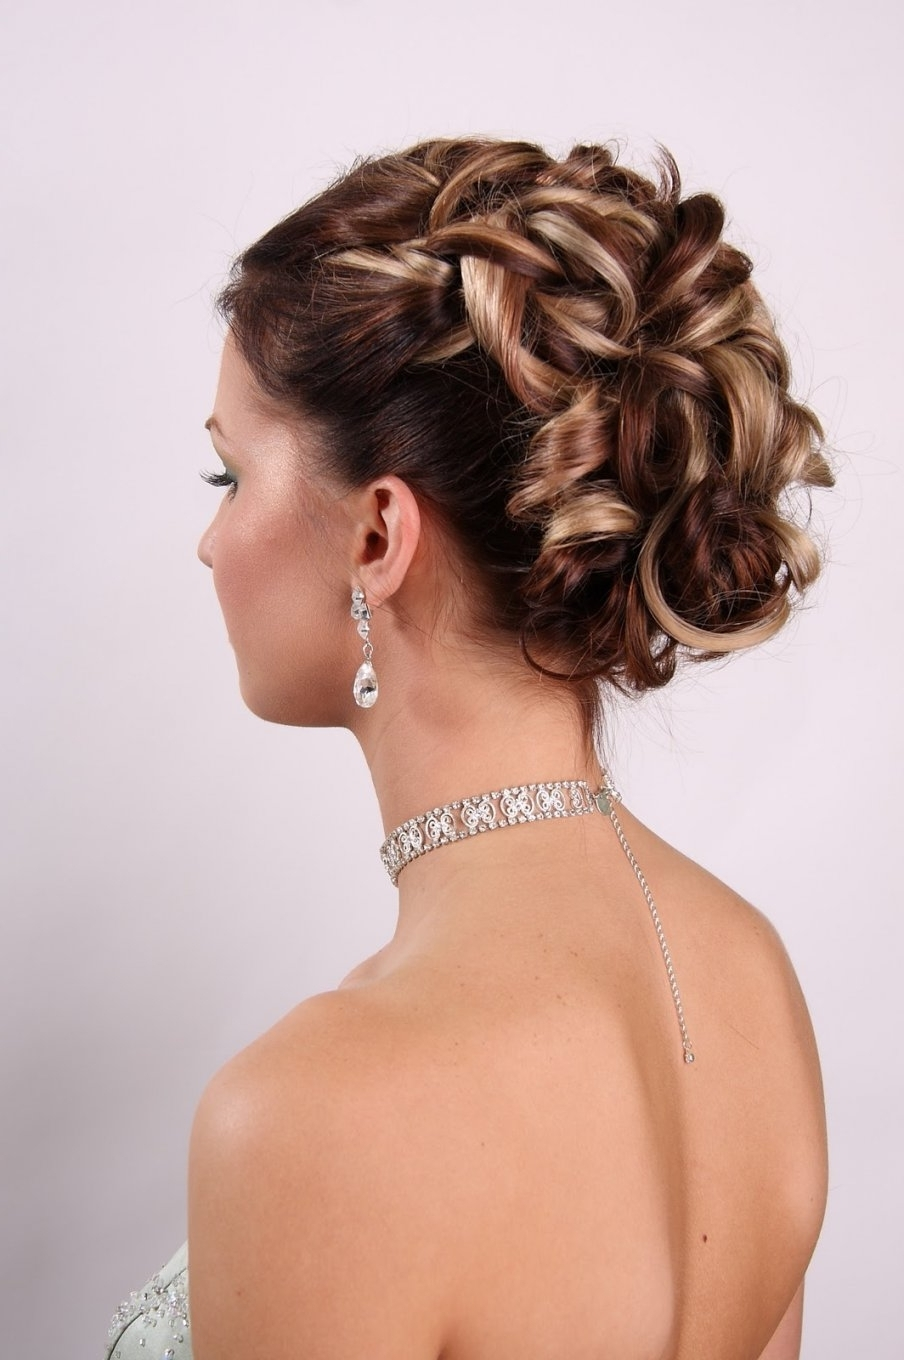 Well Liked Wedding Hairstyles For Medium Short Hair With Regard To Wedding Hairstyles Medium Short Hair – Hairstyle For Women & Man (View 15 of 15)